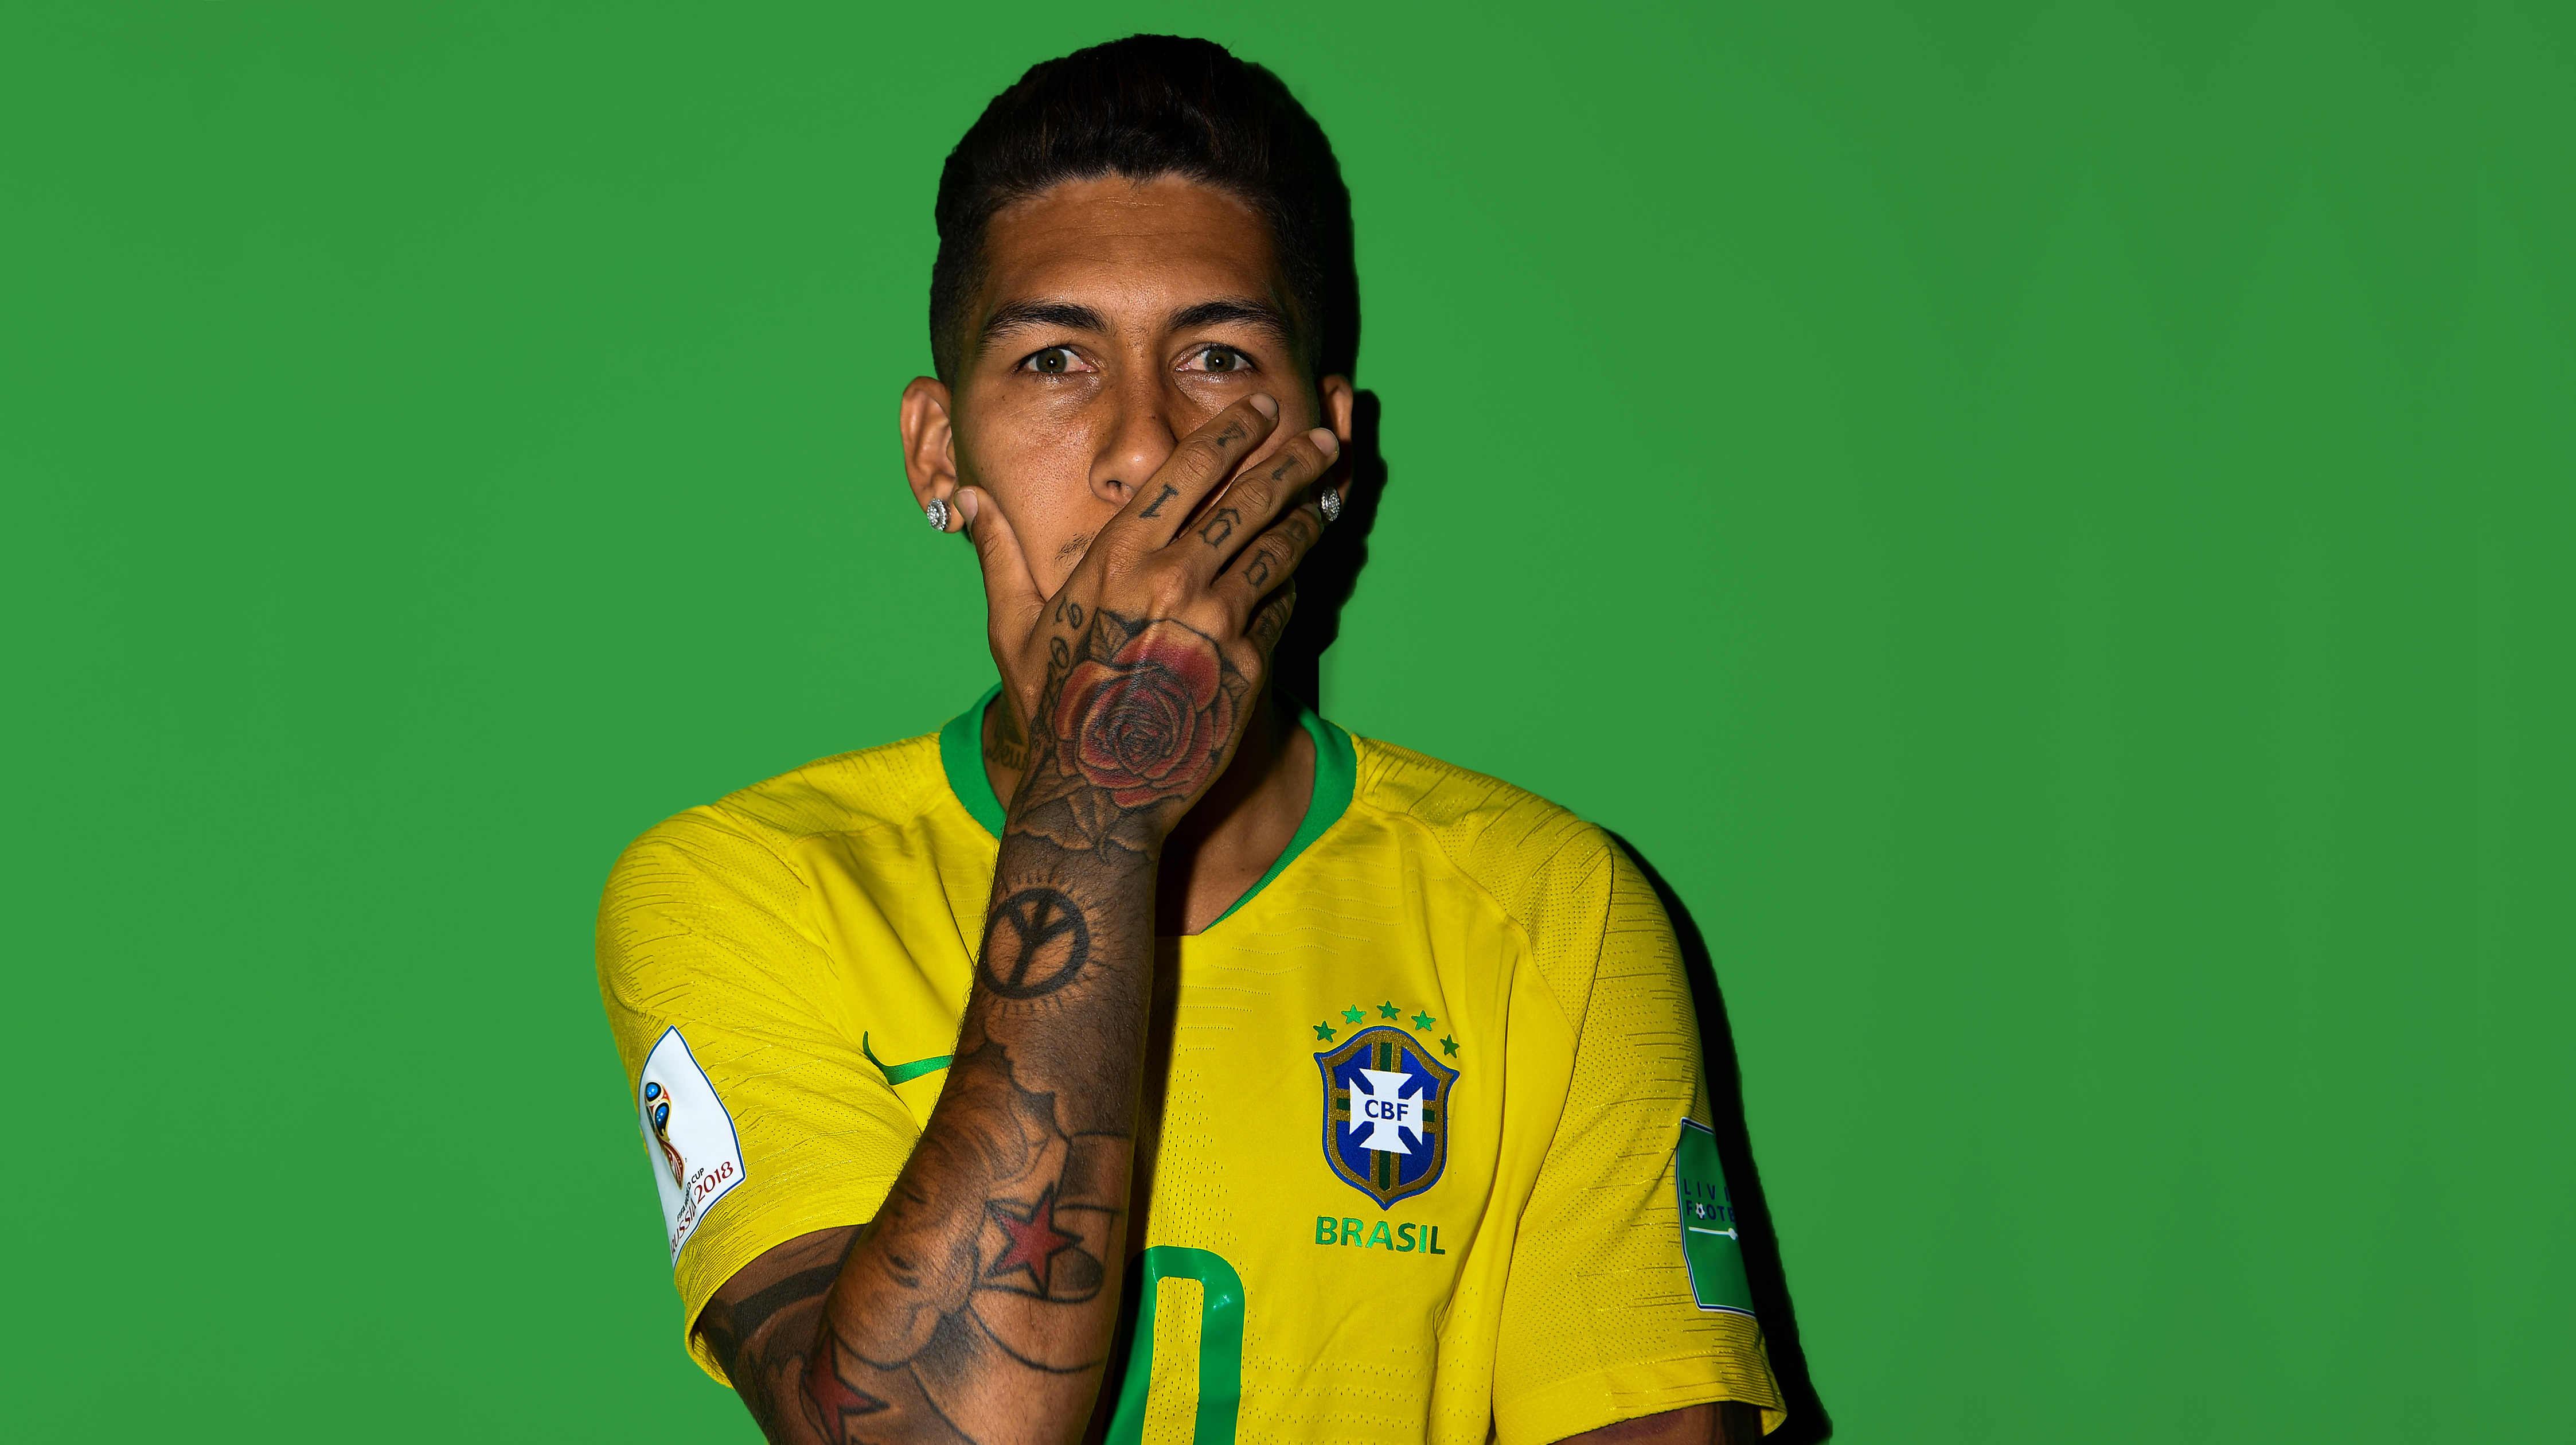 Roberto Firmino FIFA 2018 Wallpaper, HD Sports 4K